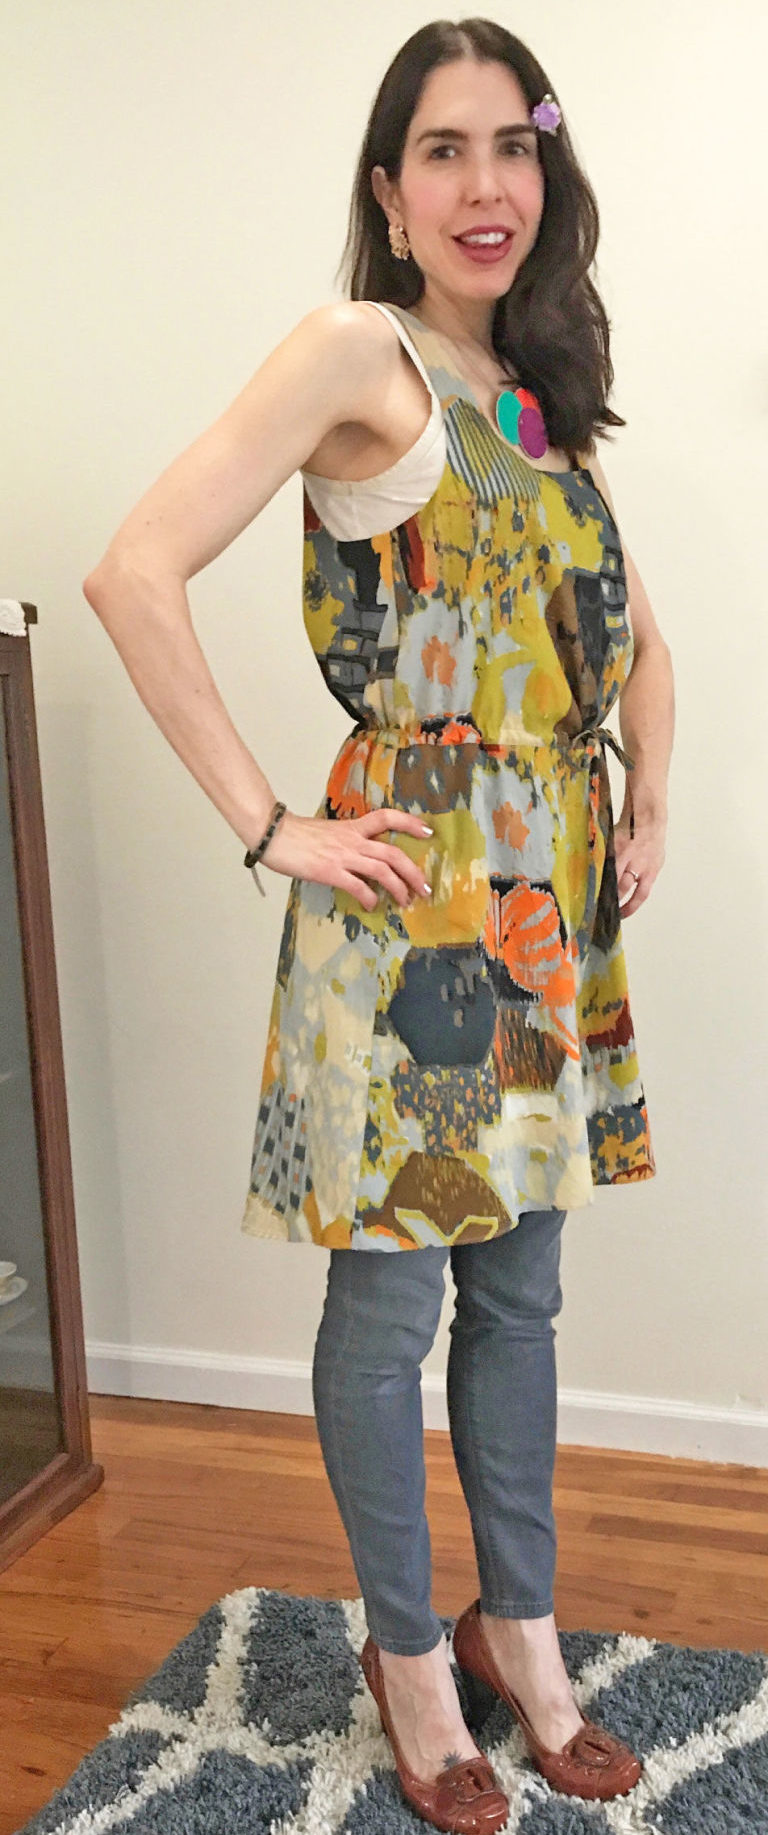 gallery-1496255383-day-2-dress-and-jeans